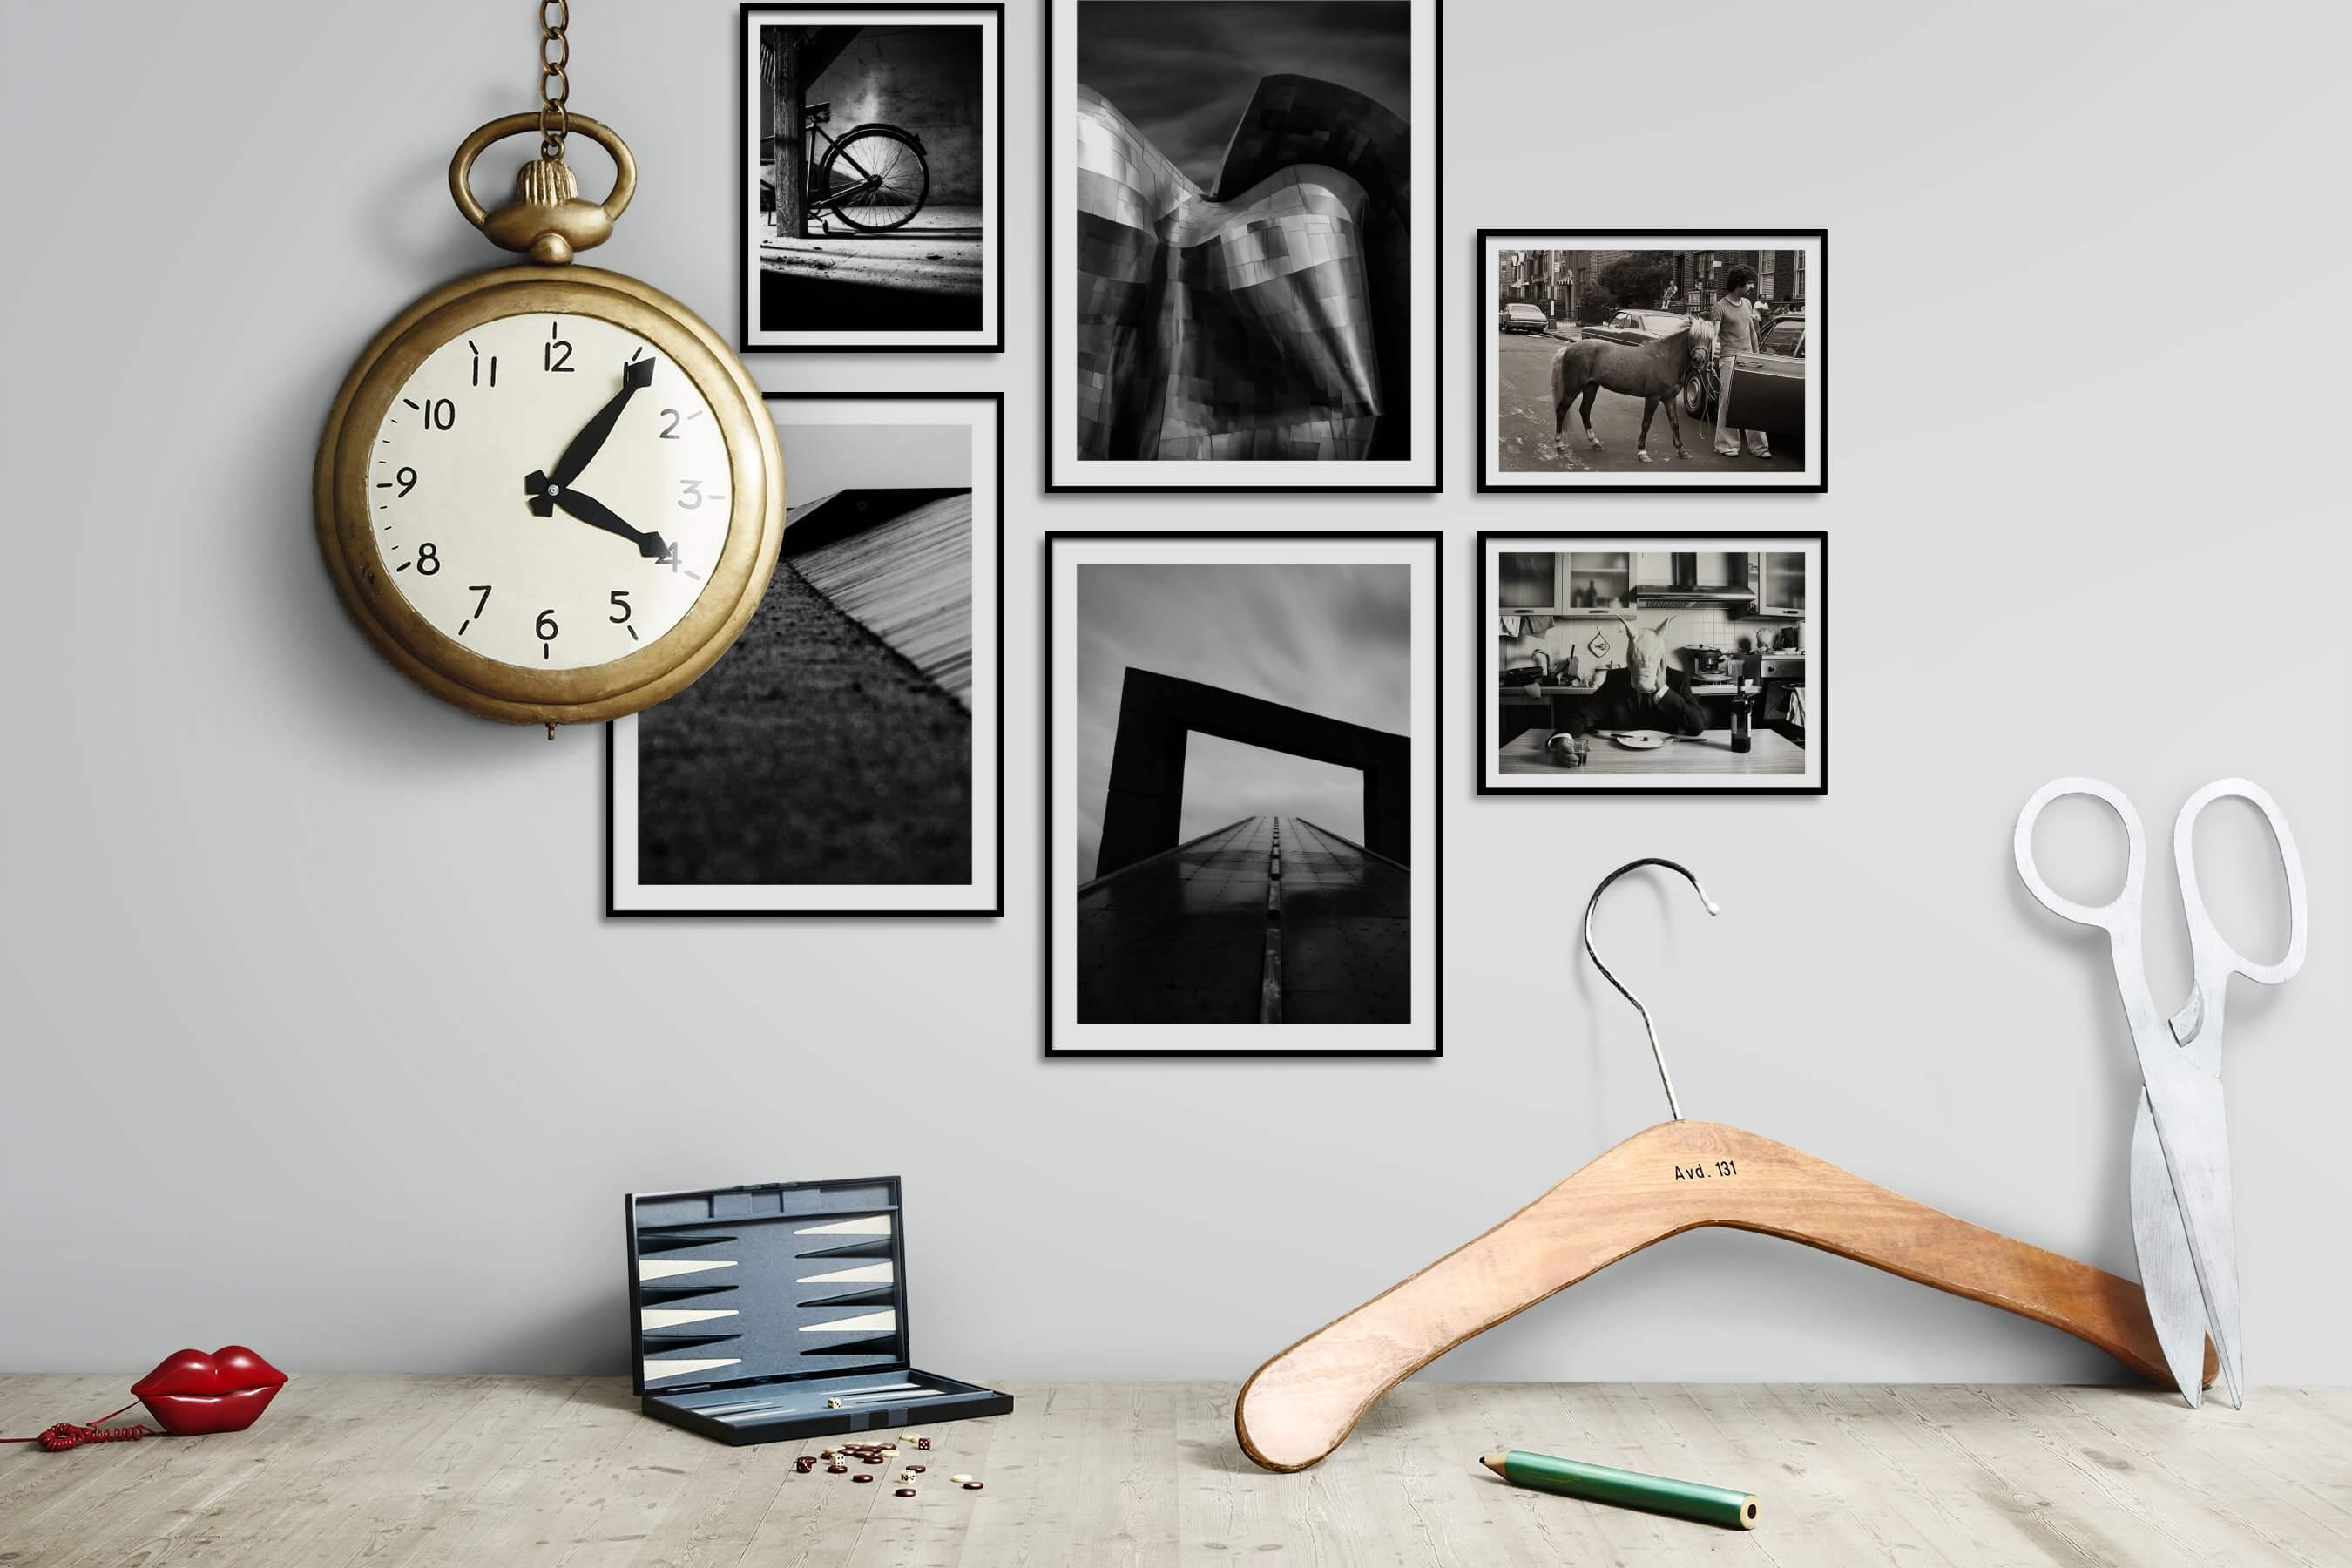 Gallery wall idea with six framed pictures arranged on a wall depicting Black & White, For the Moderate, For the Minimalist, Animals, City Life, Americana, Vintage, and Artsy